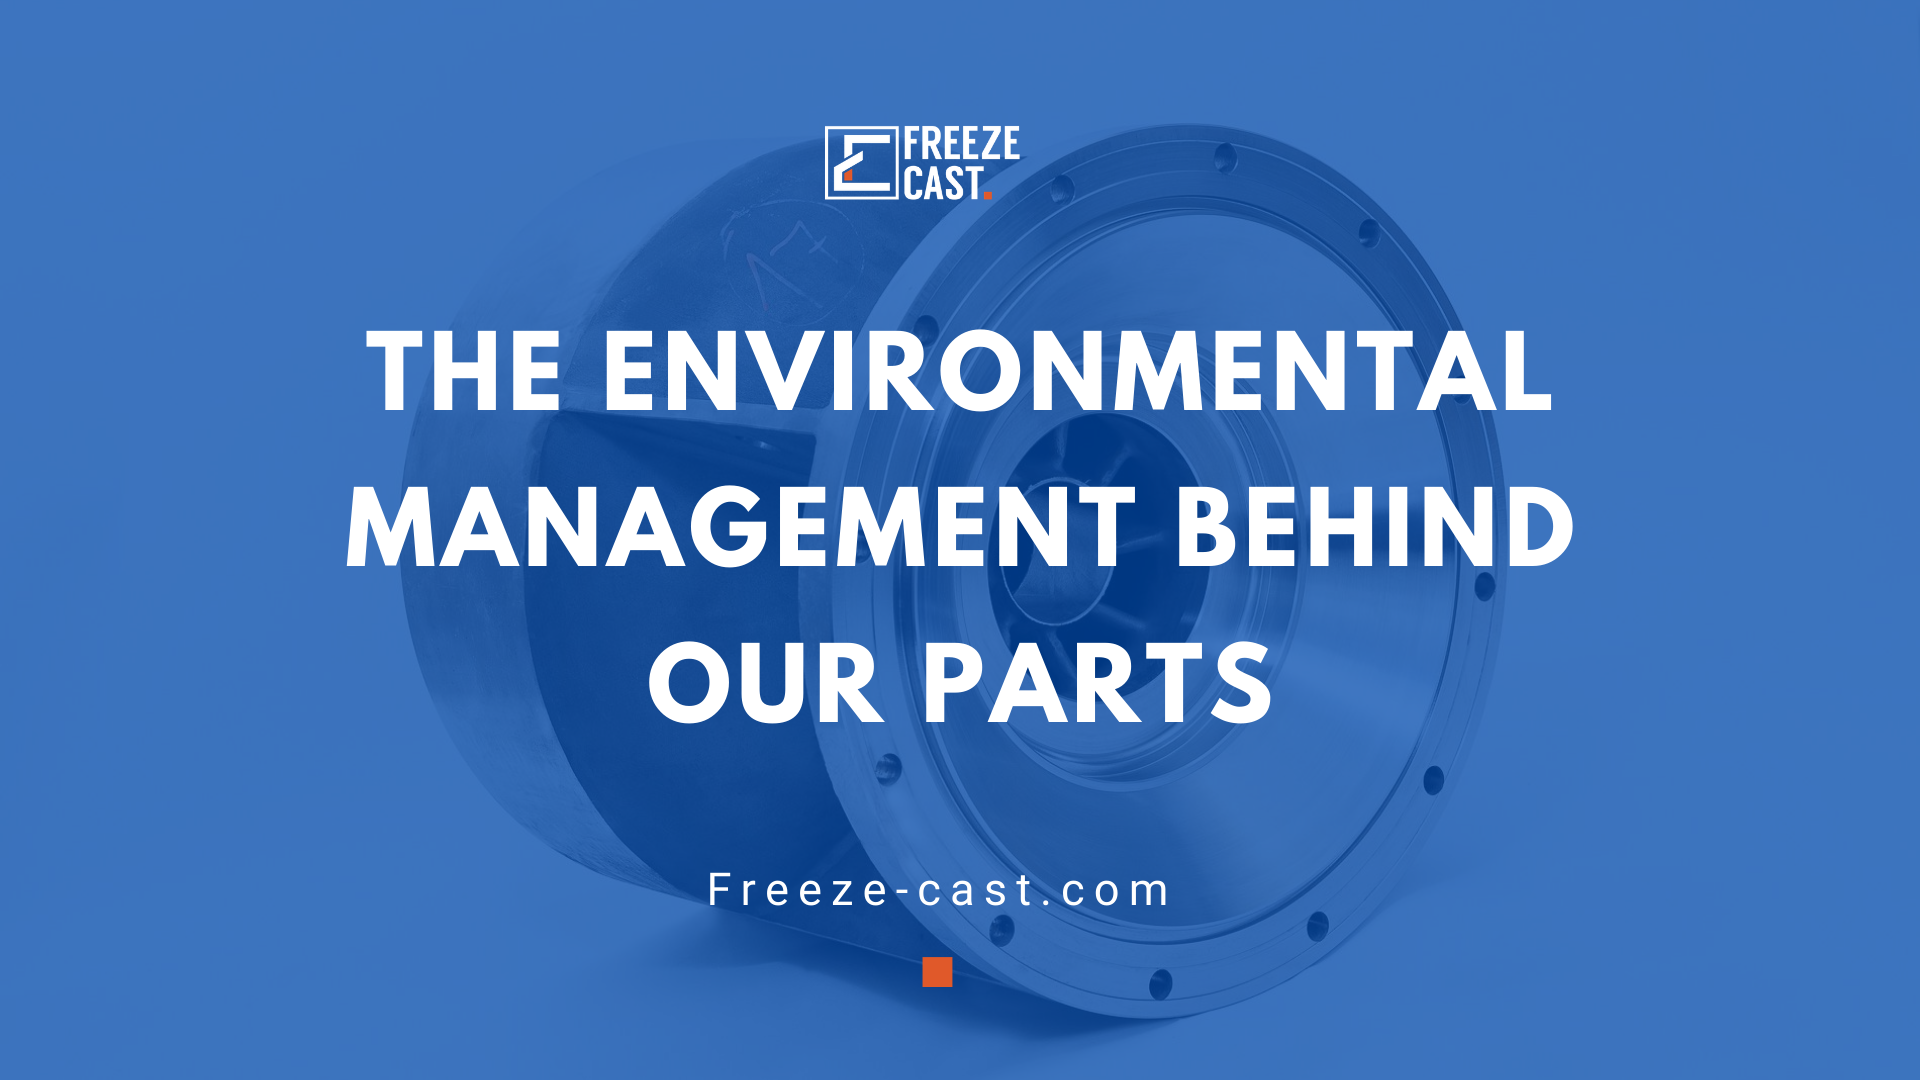 The environmental management behind our parts